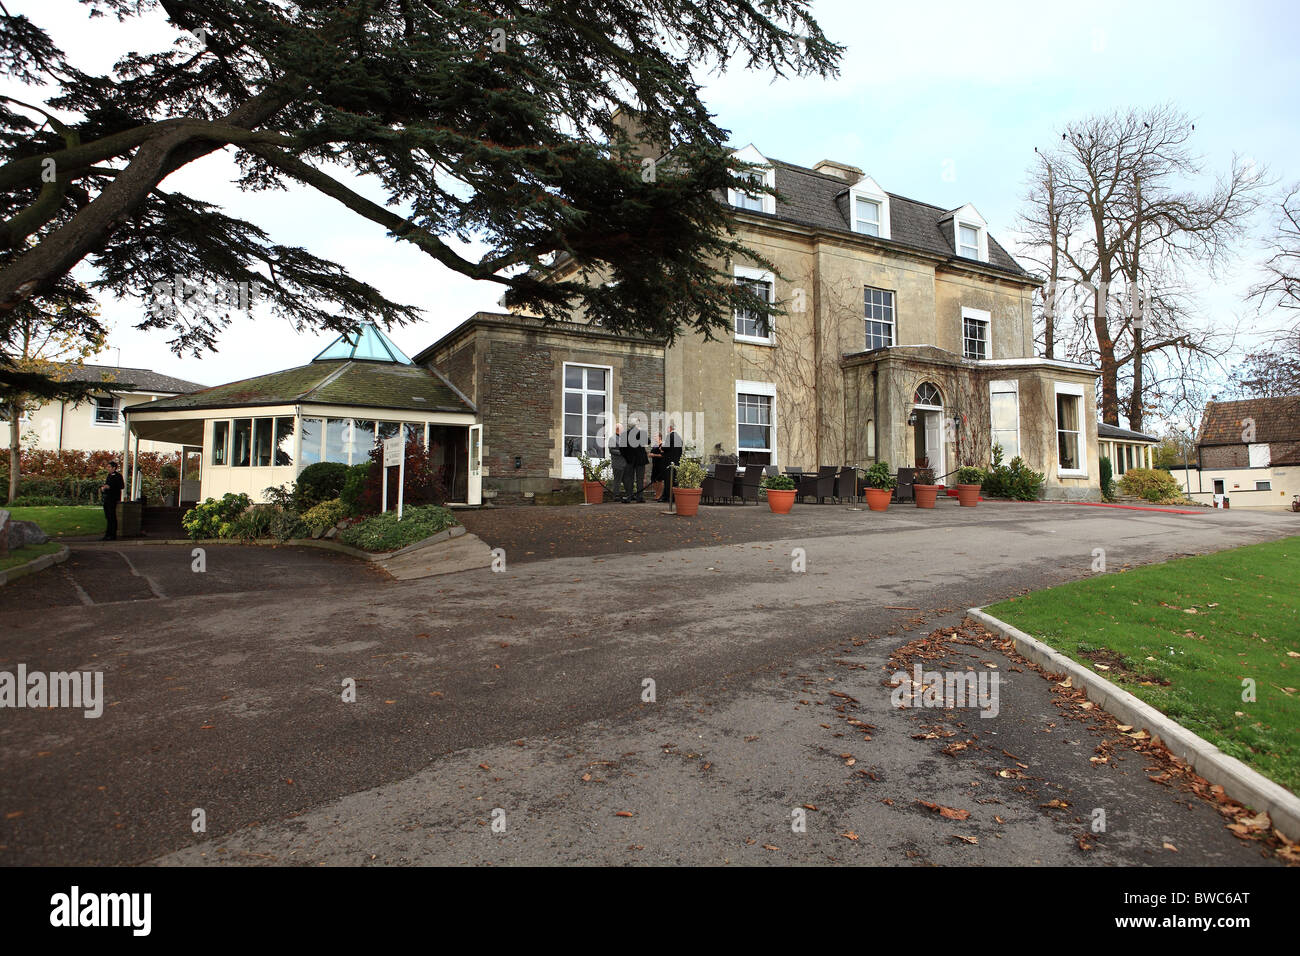 A country house hotel situated in The Heart of England and photographed in late autumn, early winter. Stock Photo